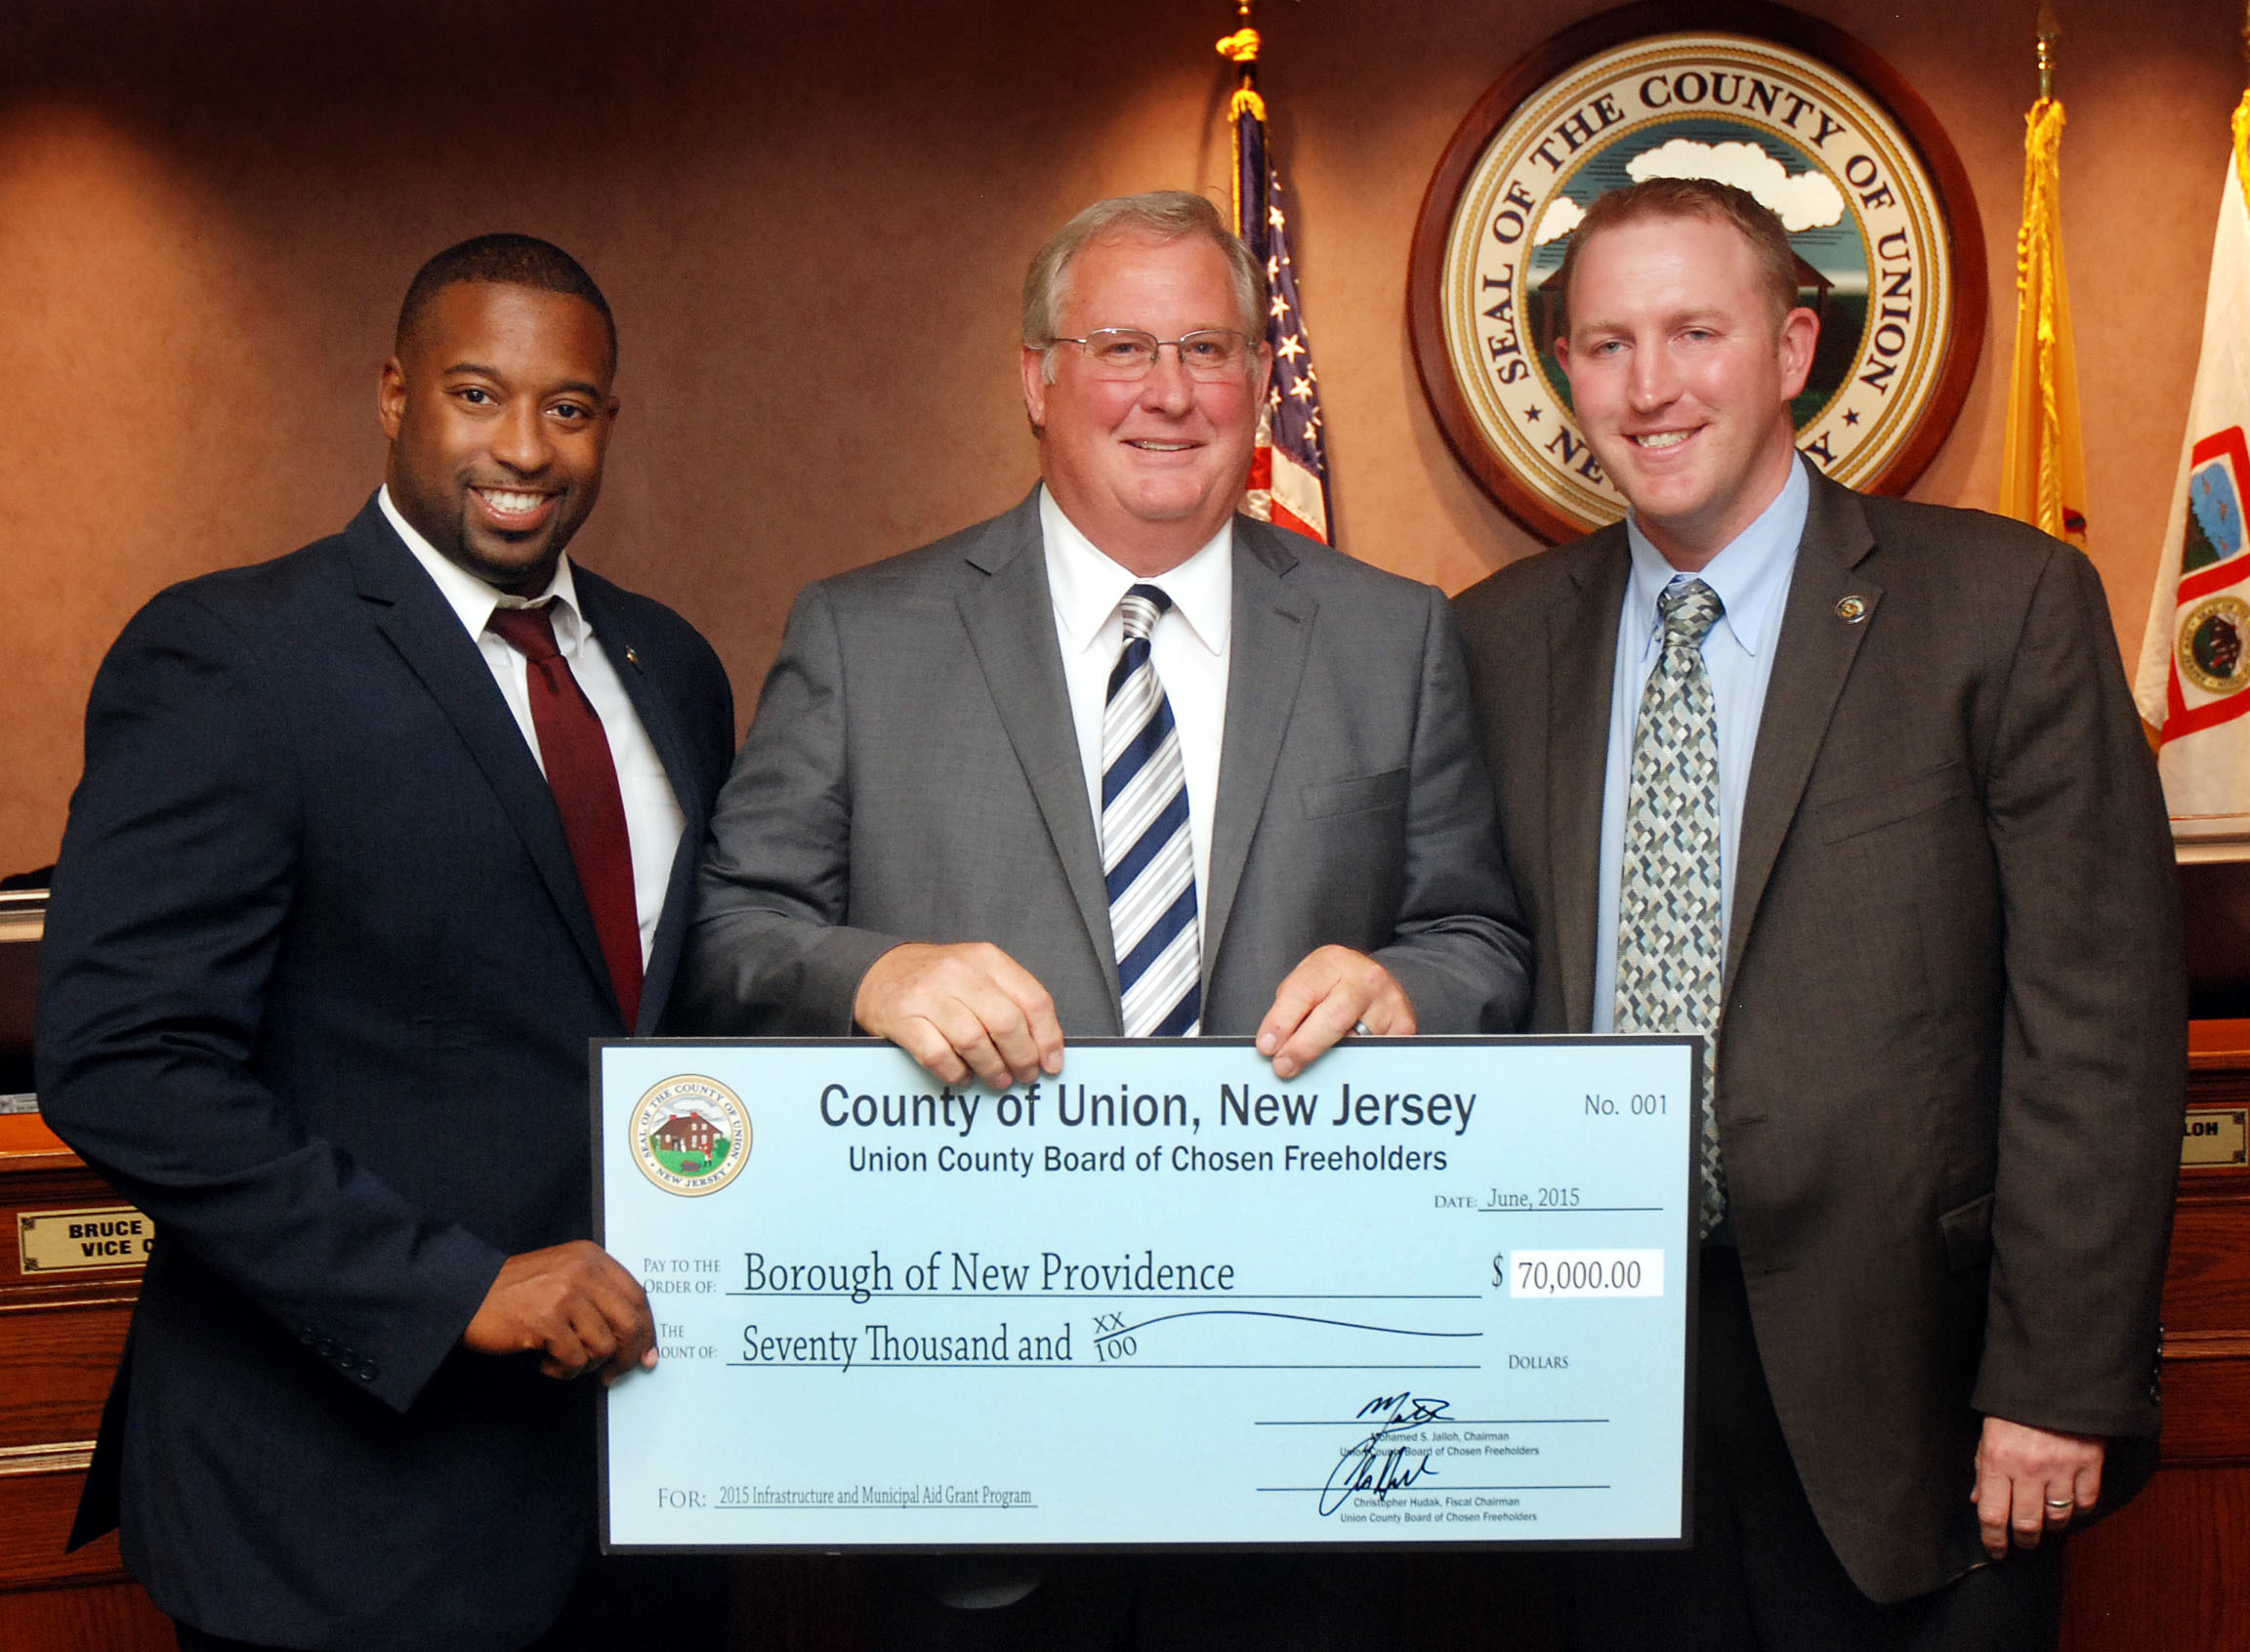 Union County Awards $70,000 Infrastructure Grant to New Providence